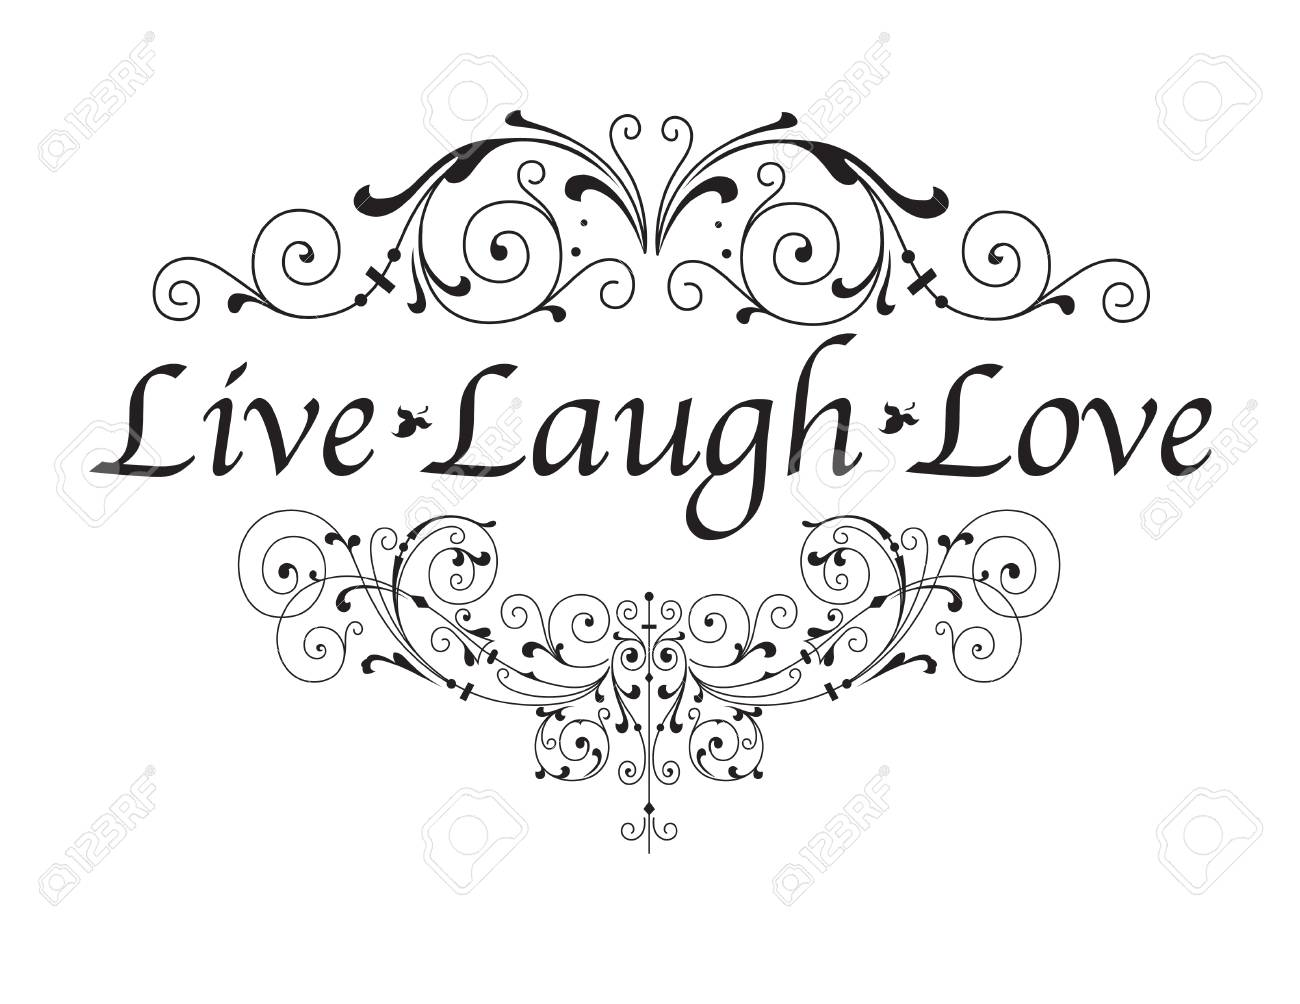 Live, Laugh, Love isolated on white background.